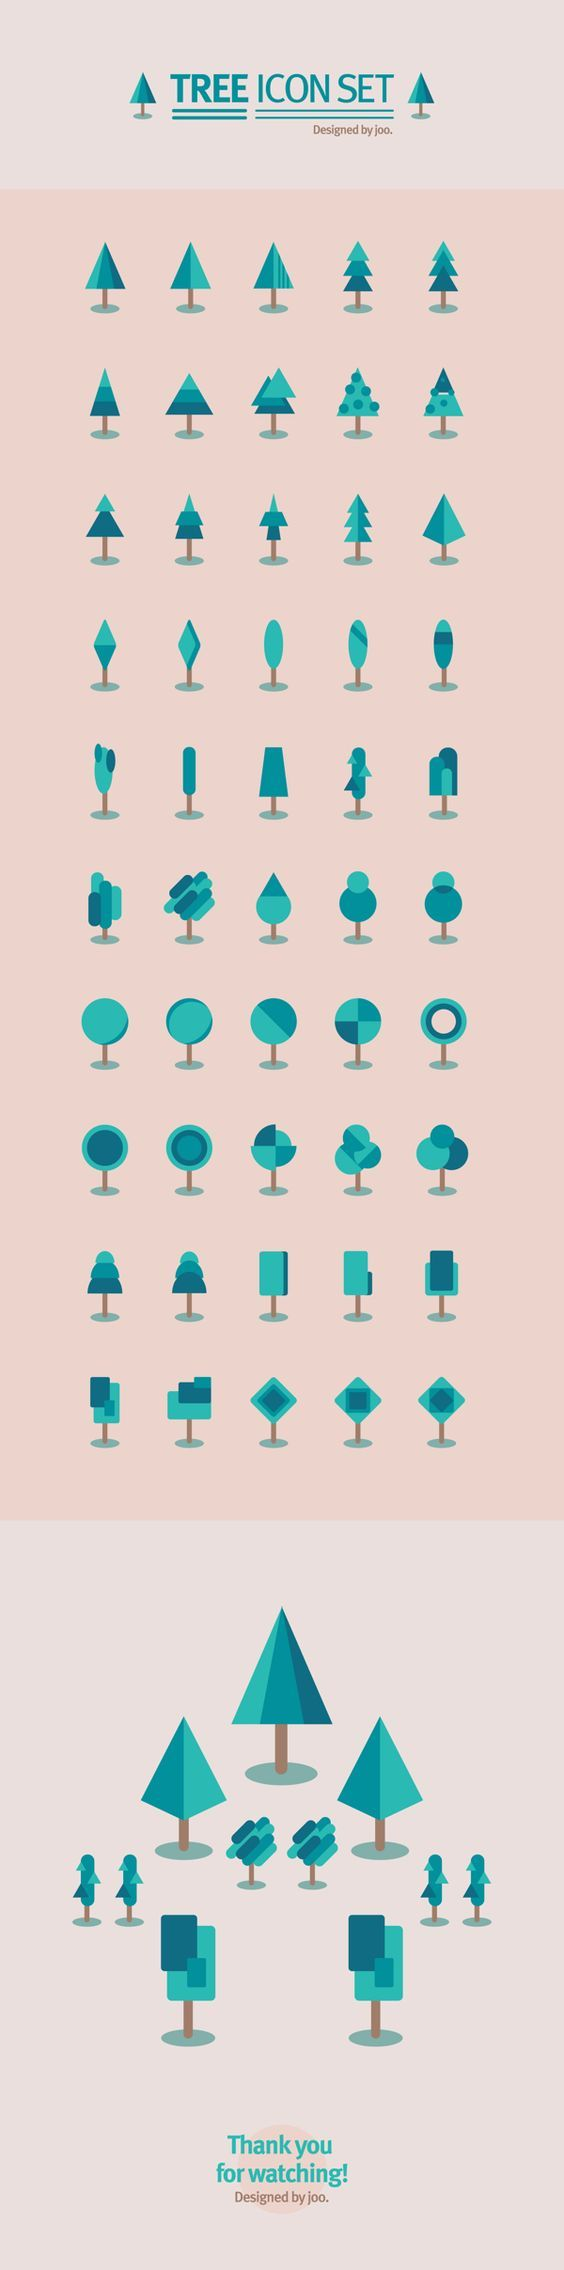 50 tree icon set: